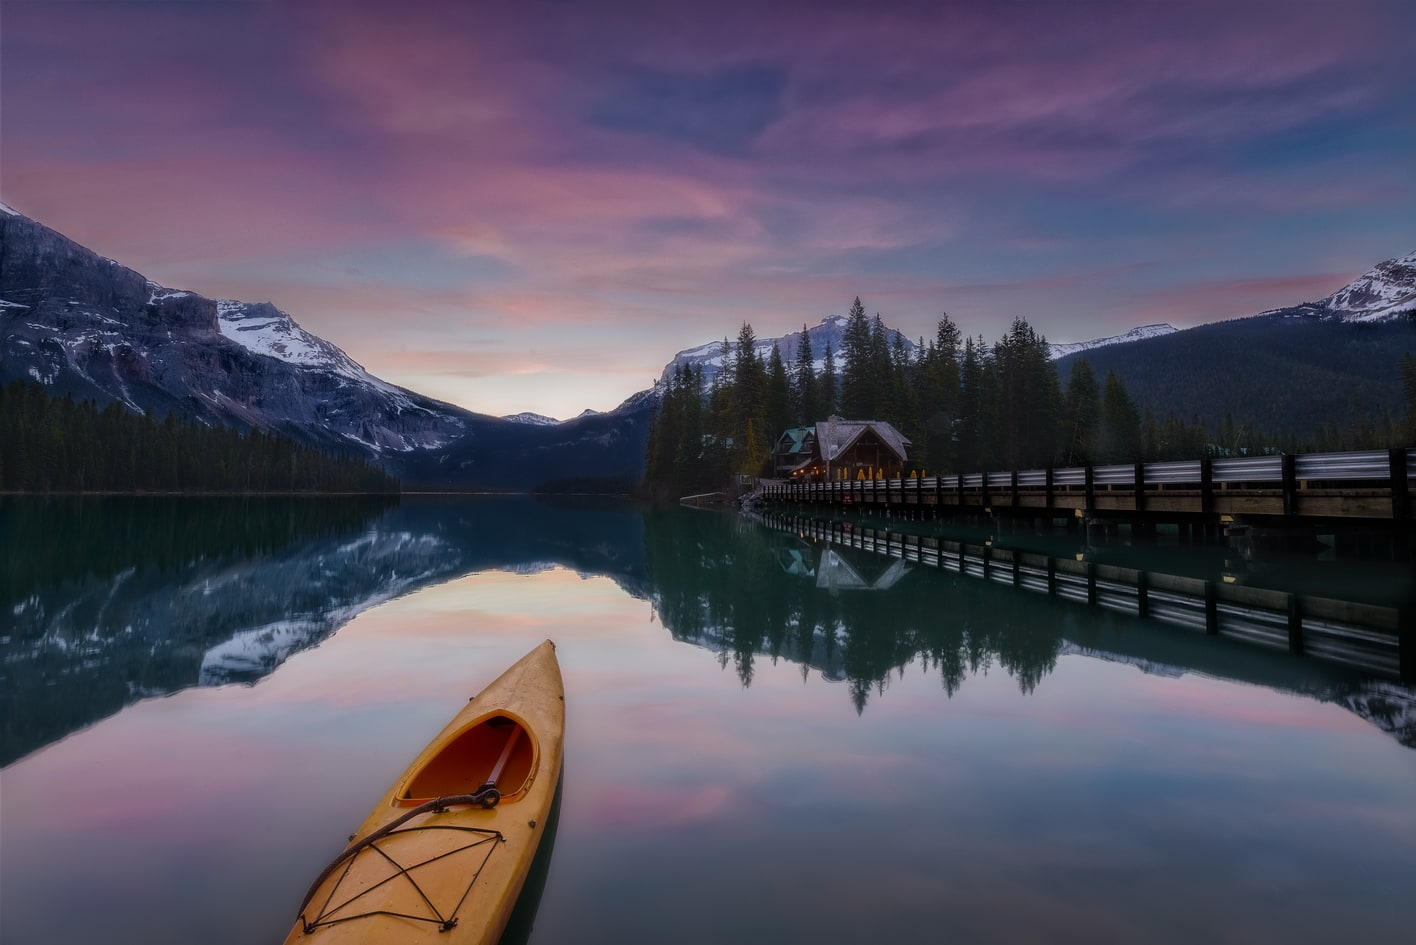 [:es]Emerald Lake Parque Nacional de Yoho Montañas Rocosas de Canada en 15 días[:en]Emerald lake sunrise yoho national park canadian rockies trip in 15 days[:]